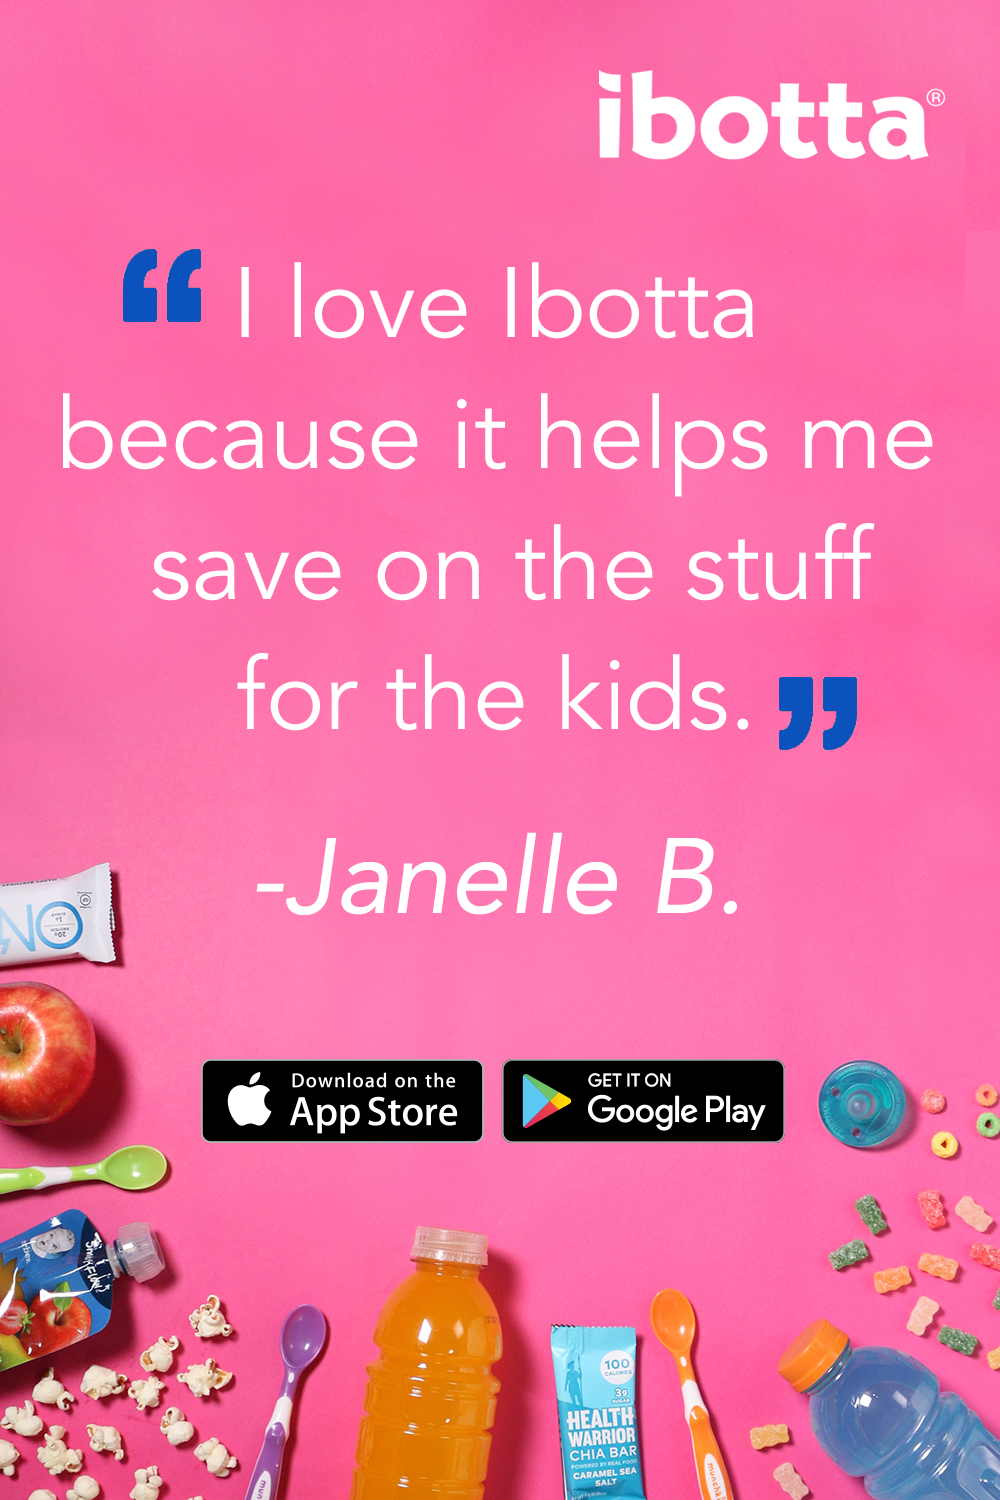 Start your shopping with the Ibotta app and earn cash back